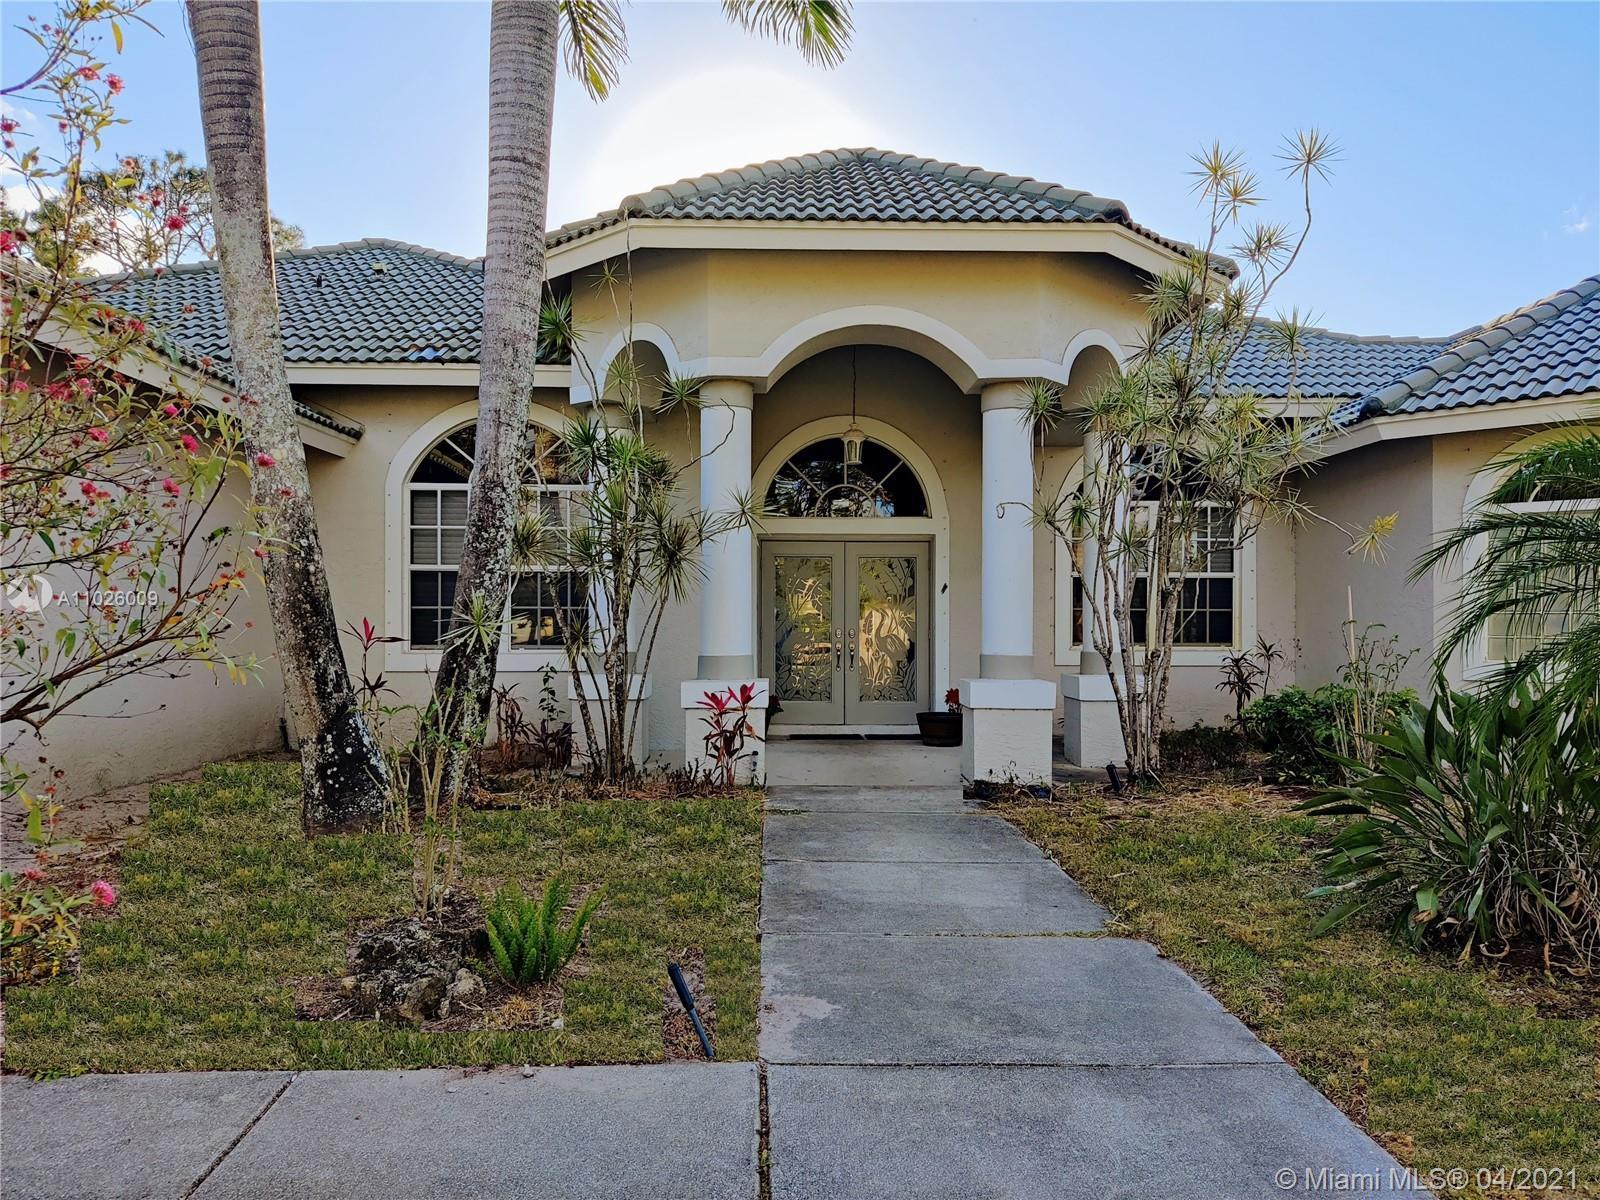 Gorgeous custom-built home (CBS) with horse barn sitting over on 2 acres Jupiter Farms! The main hom